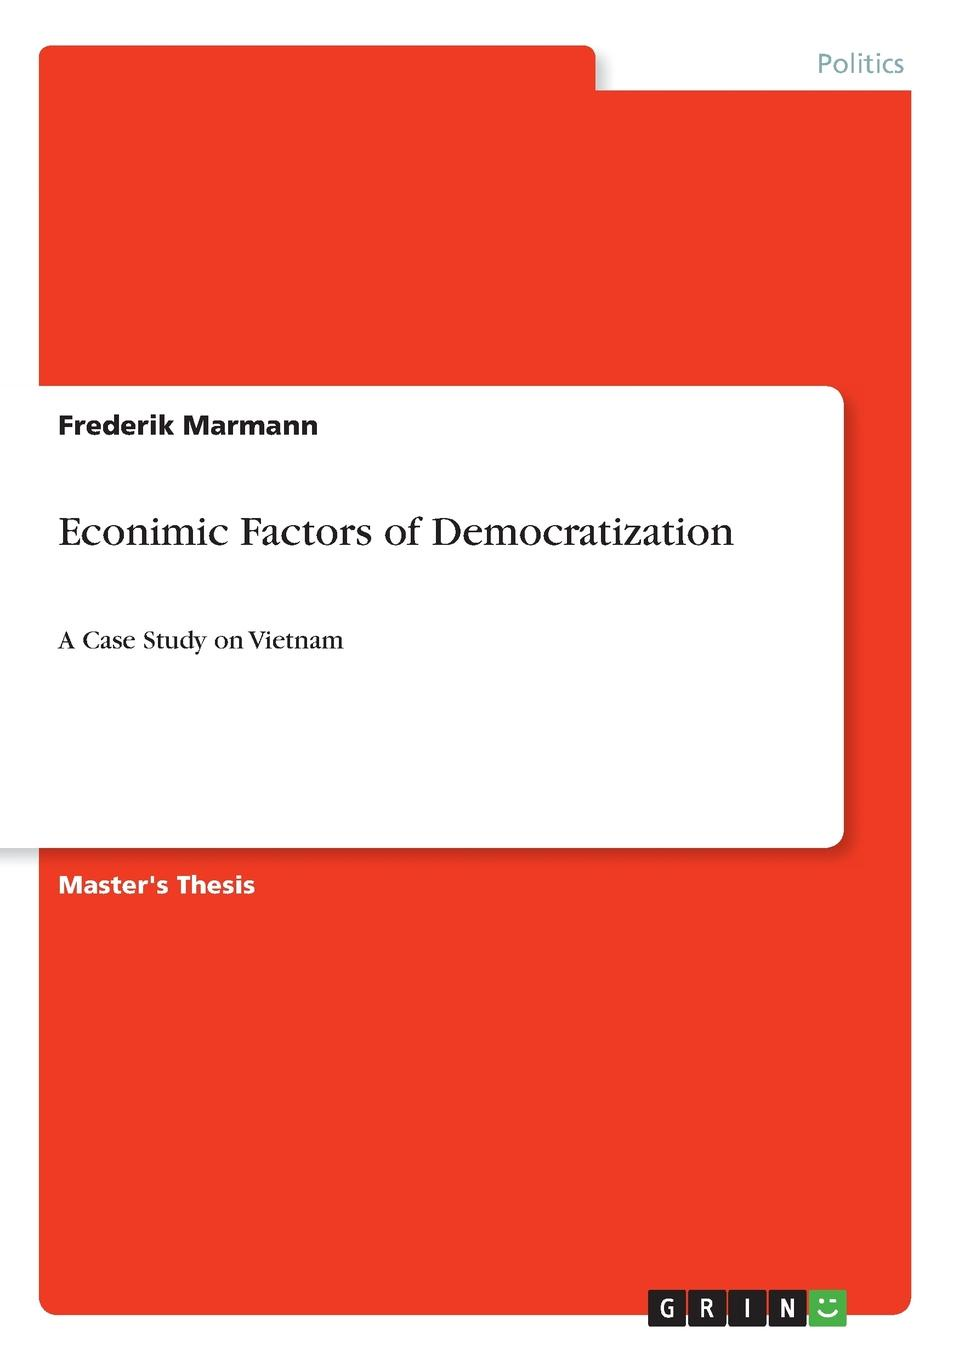 Frederik Marmann Econimic Factors of Democratization rd robinson high–level manpower in economical development – the turkish case